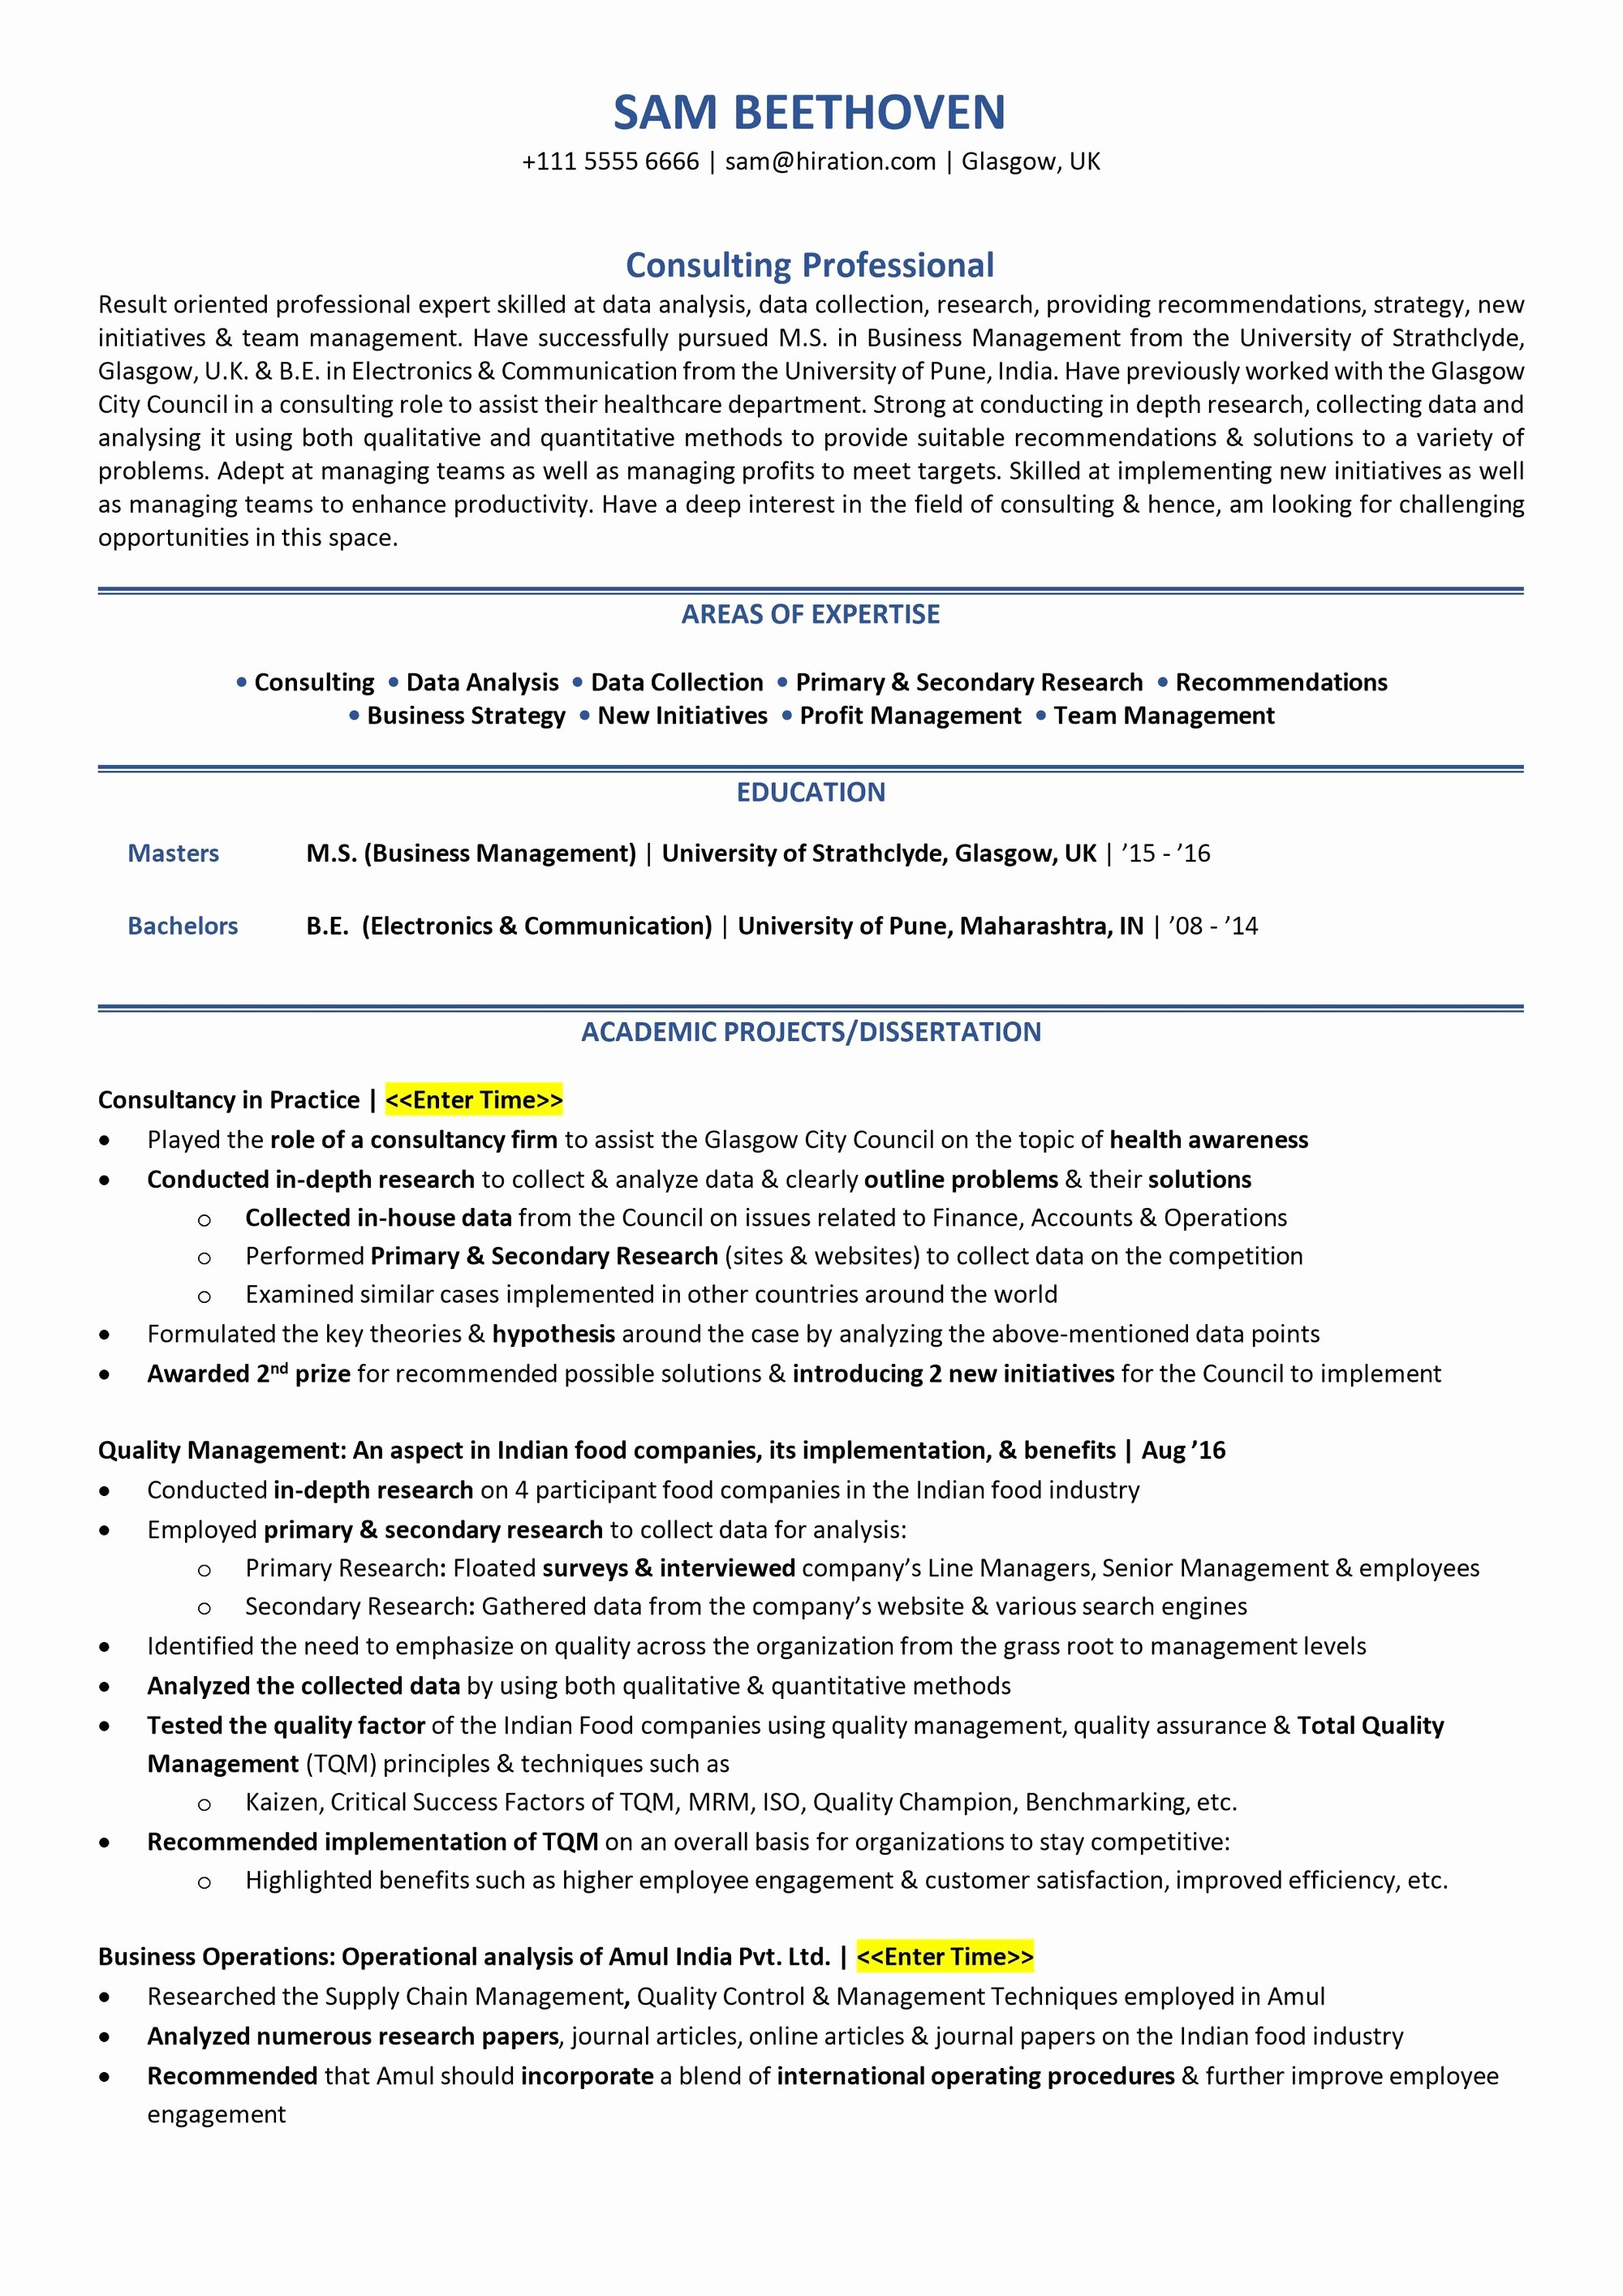 Sample Resume College Student Fresh Student Resume [2019] Guide to College Student Resume